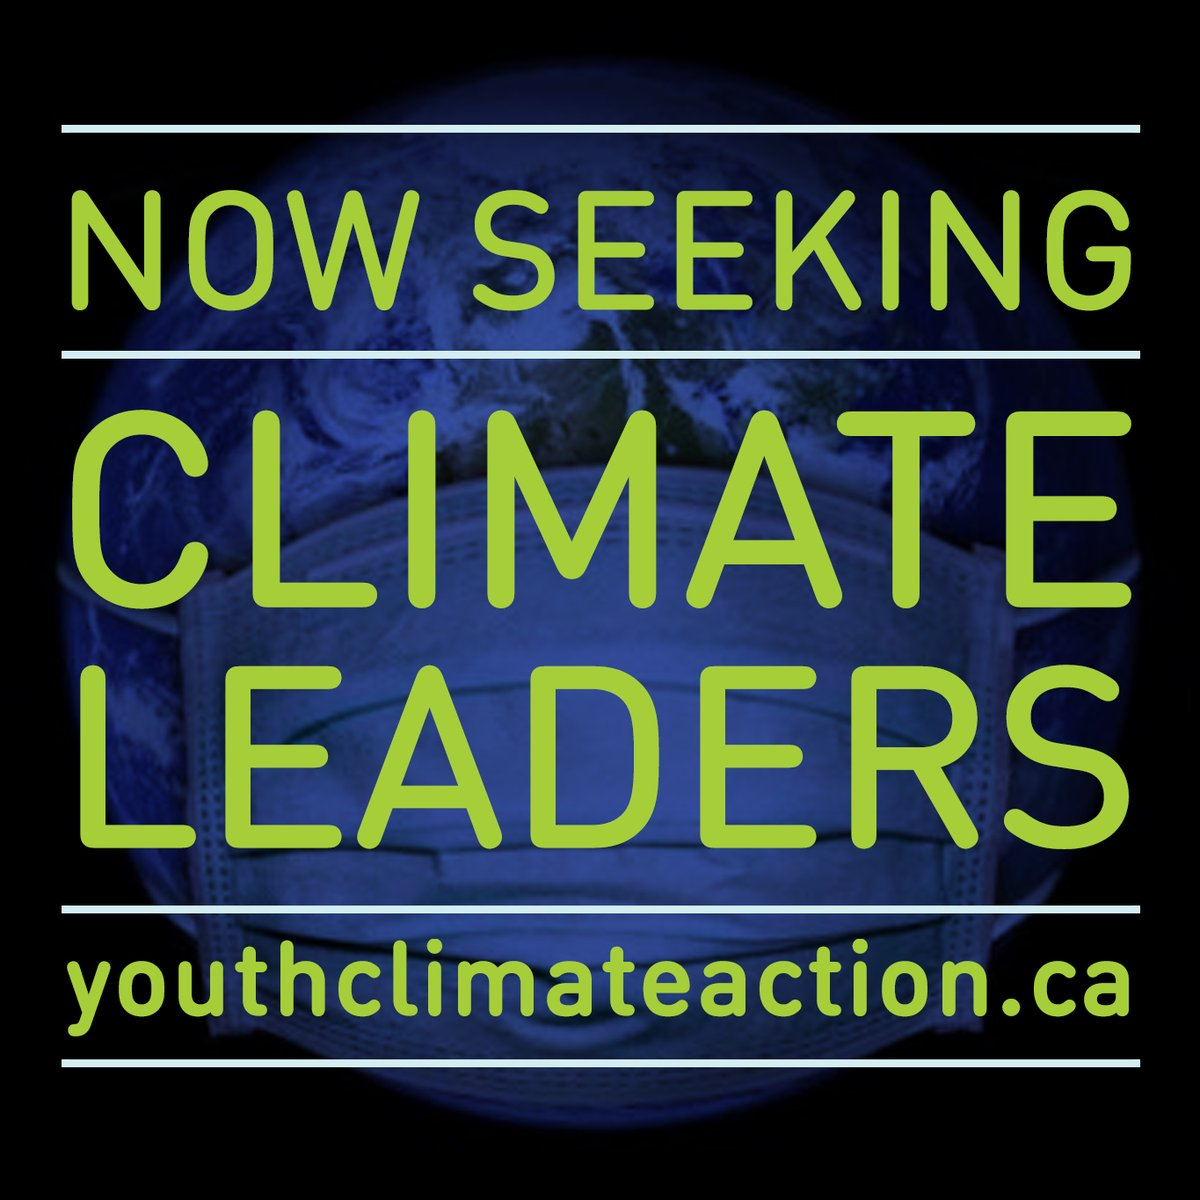 🔵 We're recruiting Climate Leaders!  Want to gain #leadershipskills, ignite #climateaction and #makeanimpact in your community?  Through #YCI's #YouthClimateLeadership Program, young people aged 19-25 in the #GTHA can!  Spaces limited, apply today 🔵